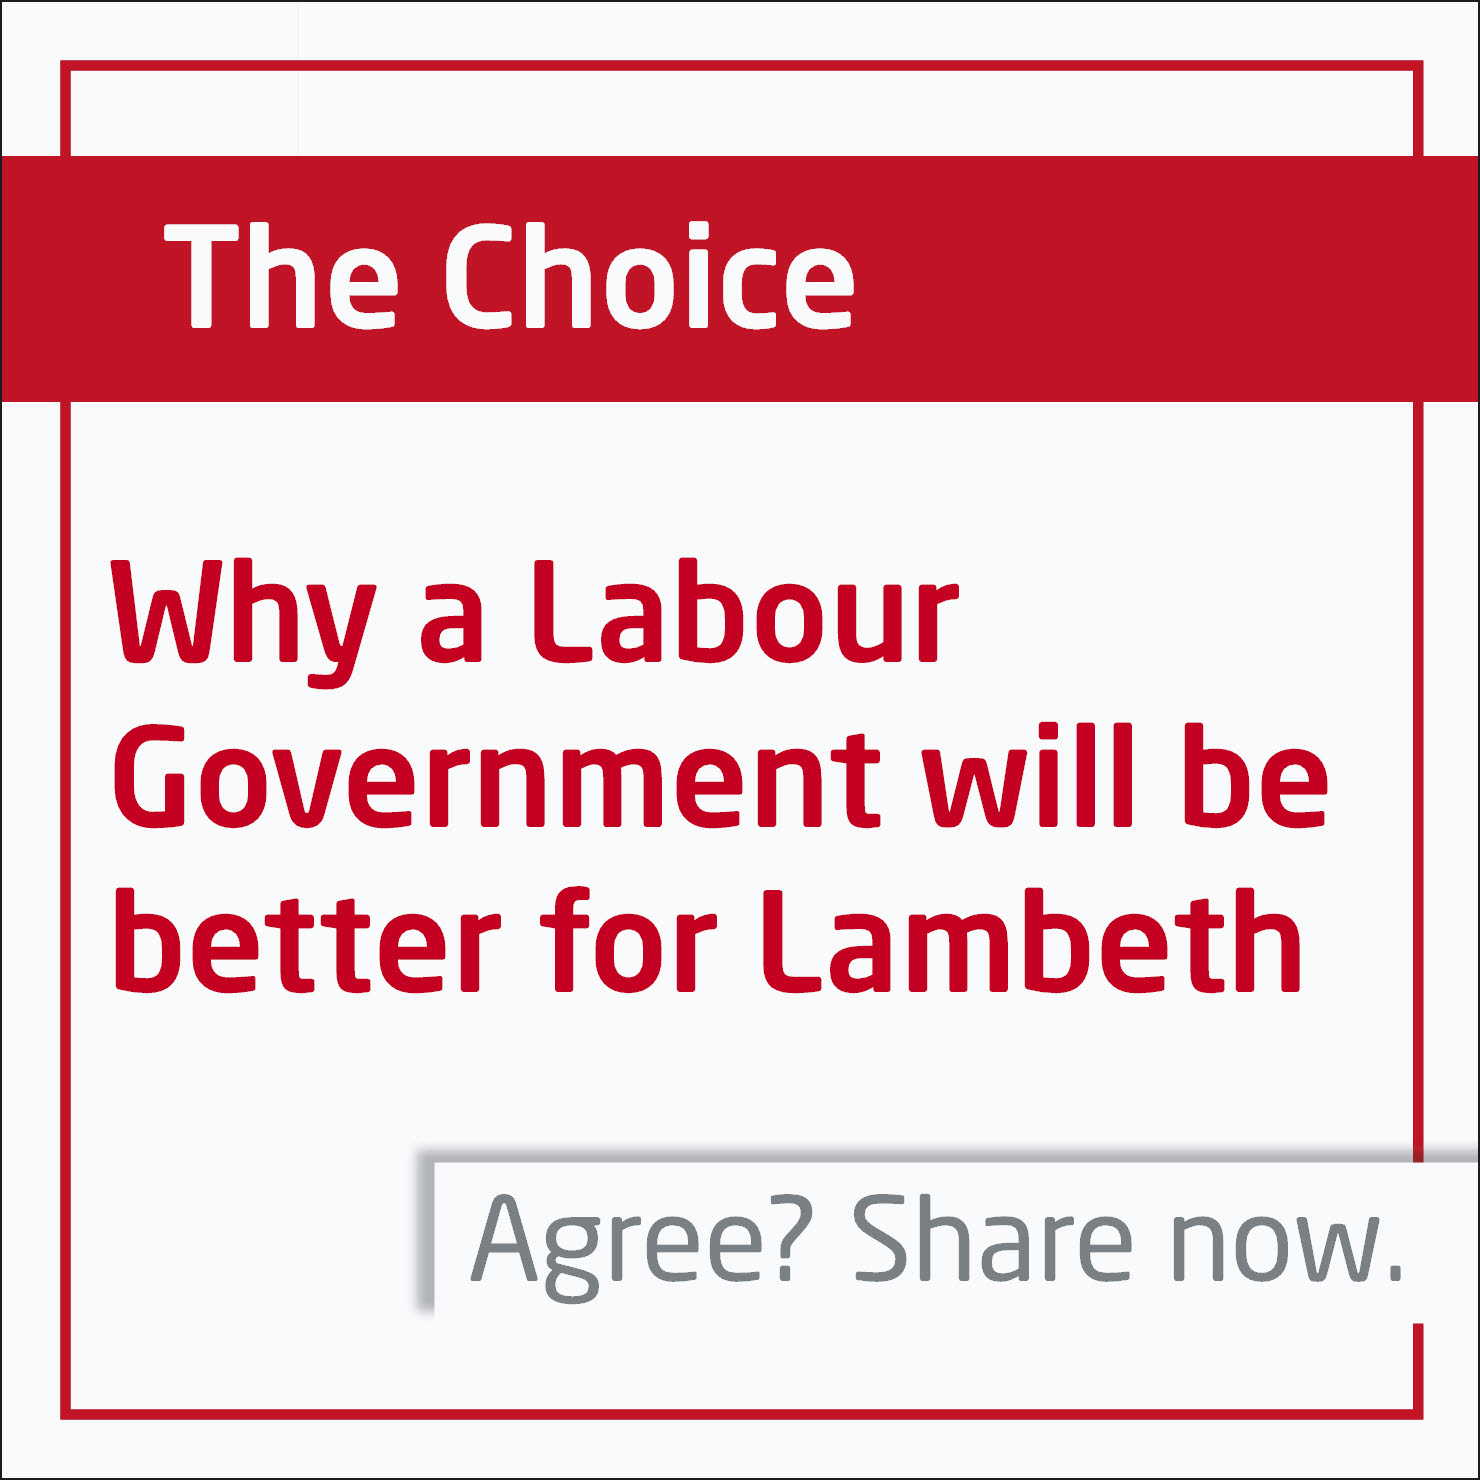 Better_for_Lambeth.jpg